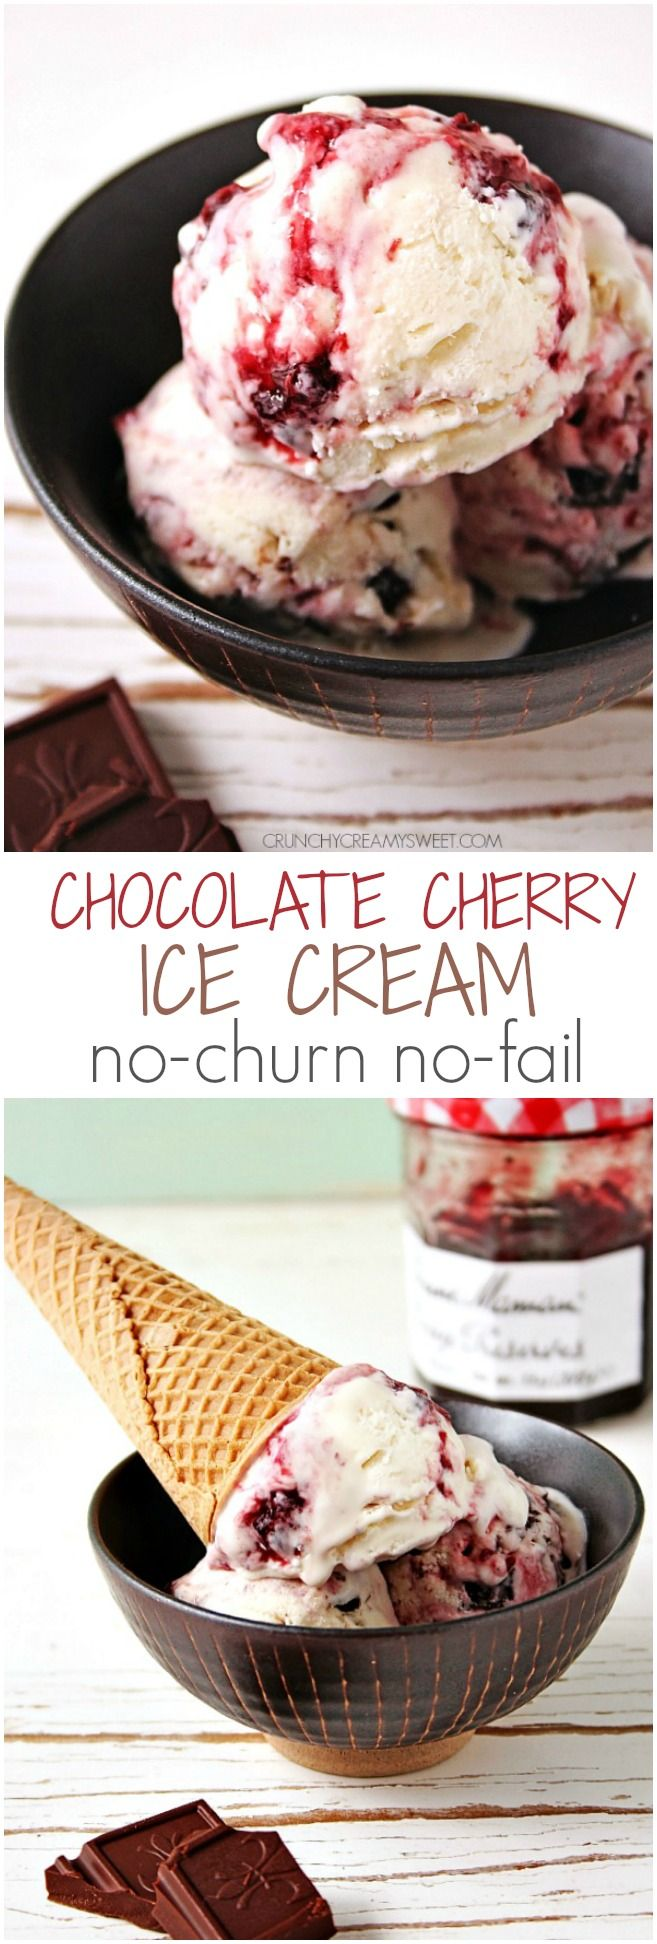 Chocolate Cherry Ice Cream – no-churn homemade ice cream recipe with a 2-ingredient vanilla base, cherry preserves swirl and dark chocolate chunks!